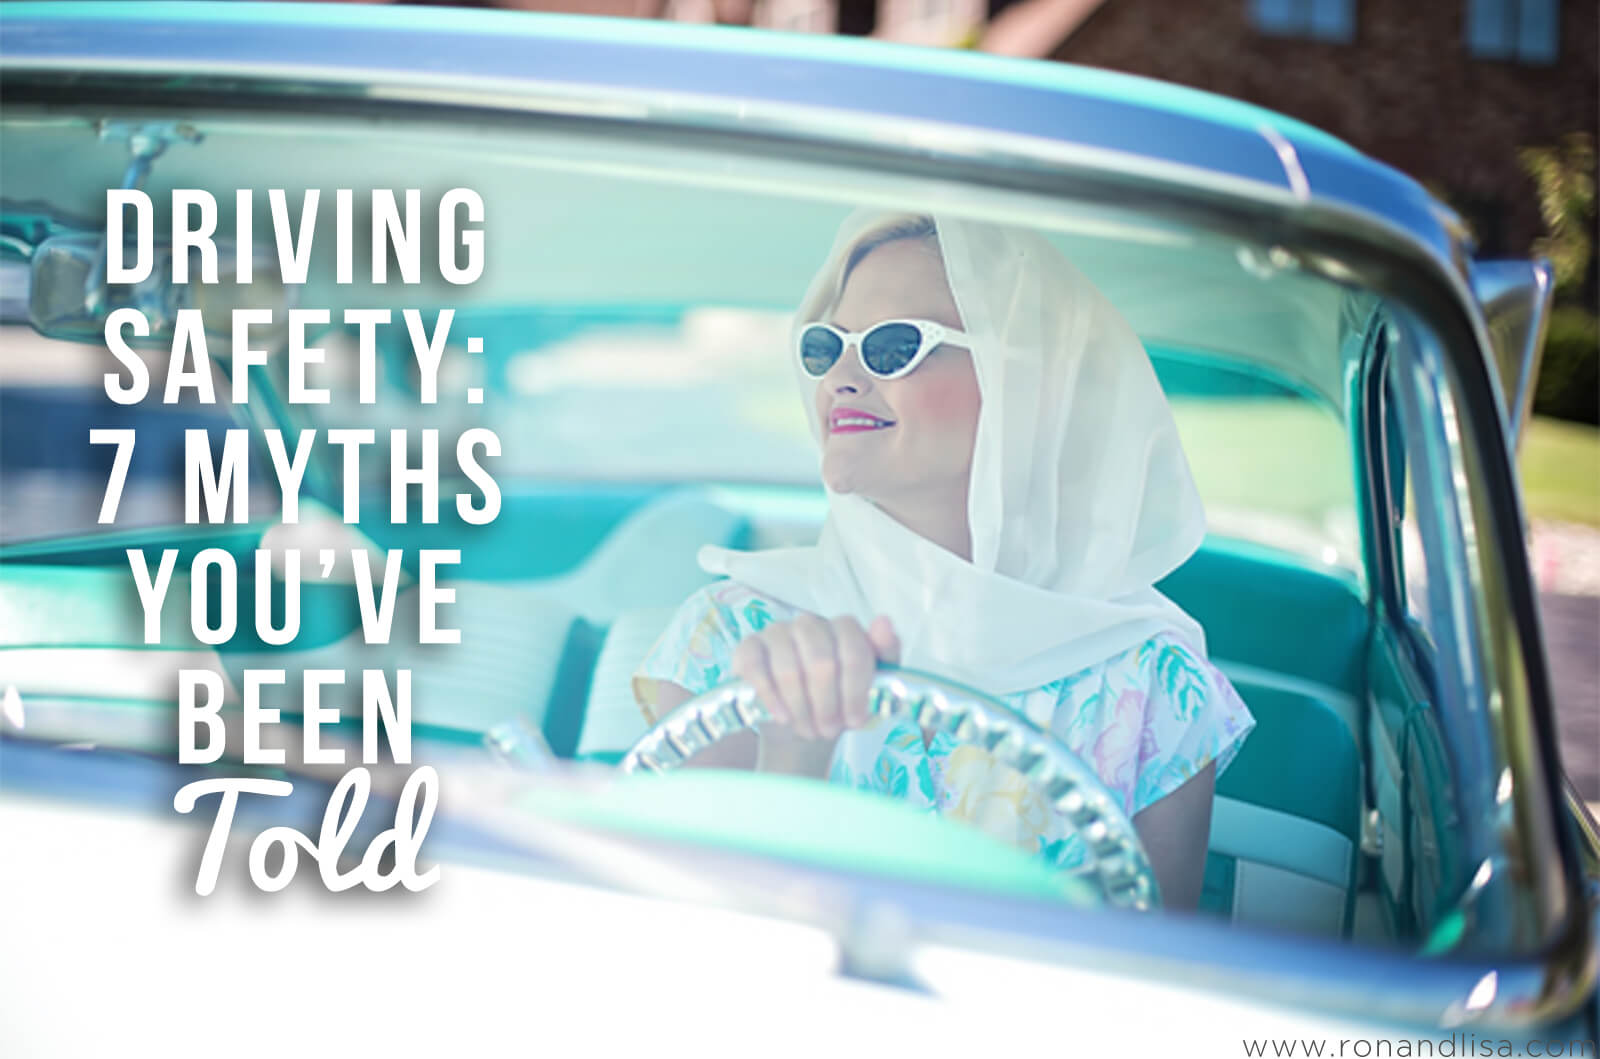 Driving Safety 7 Myths You've Been Told